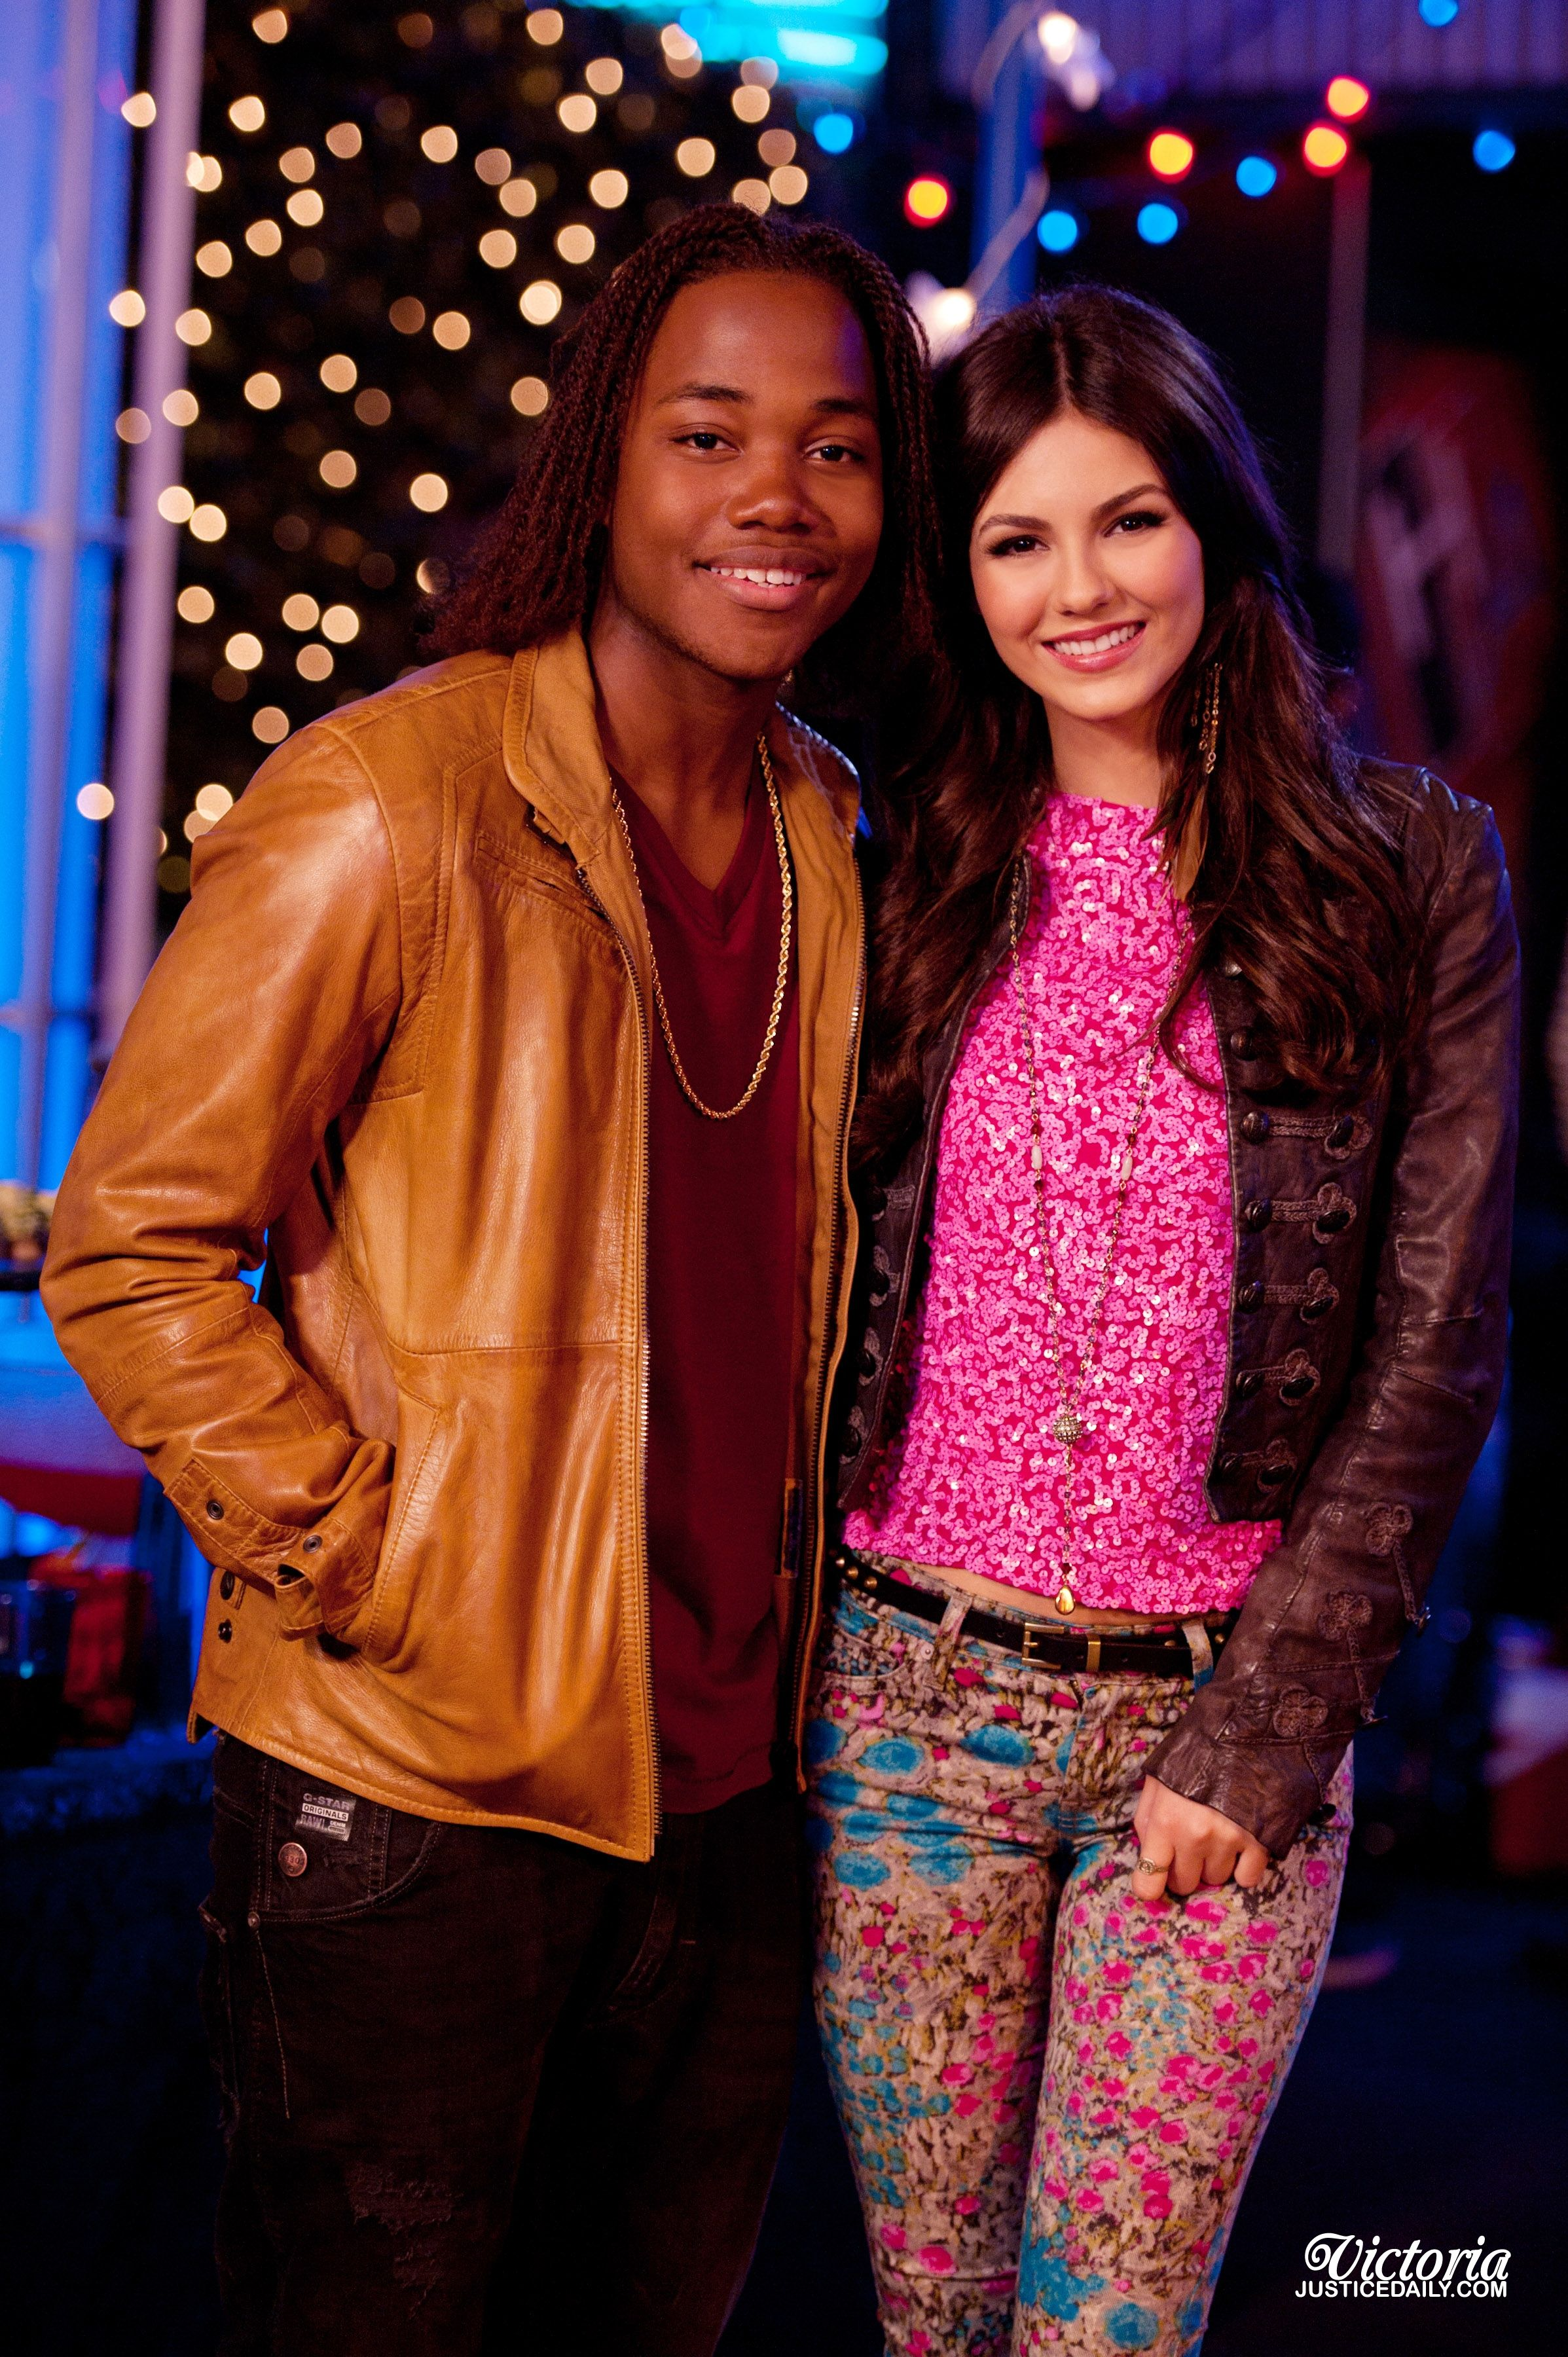 Victorious Andre and Tori